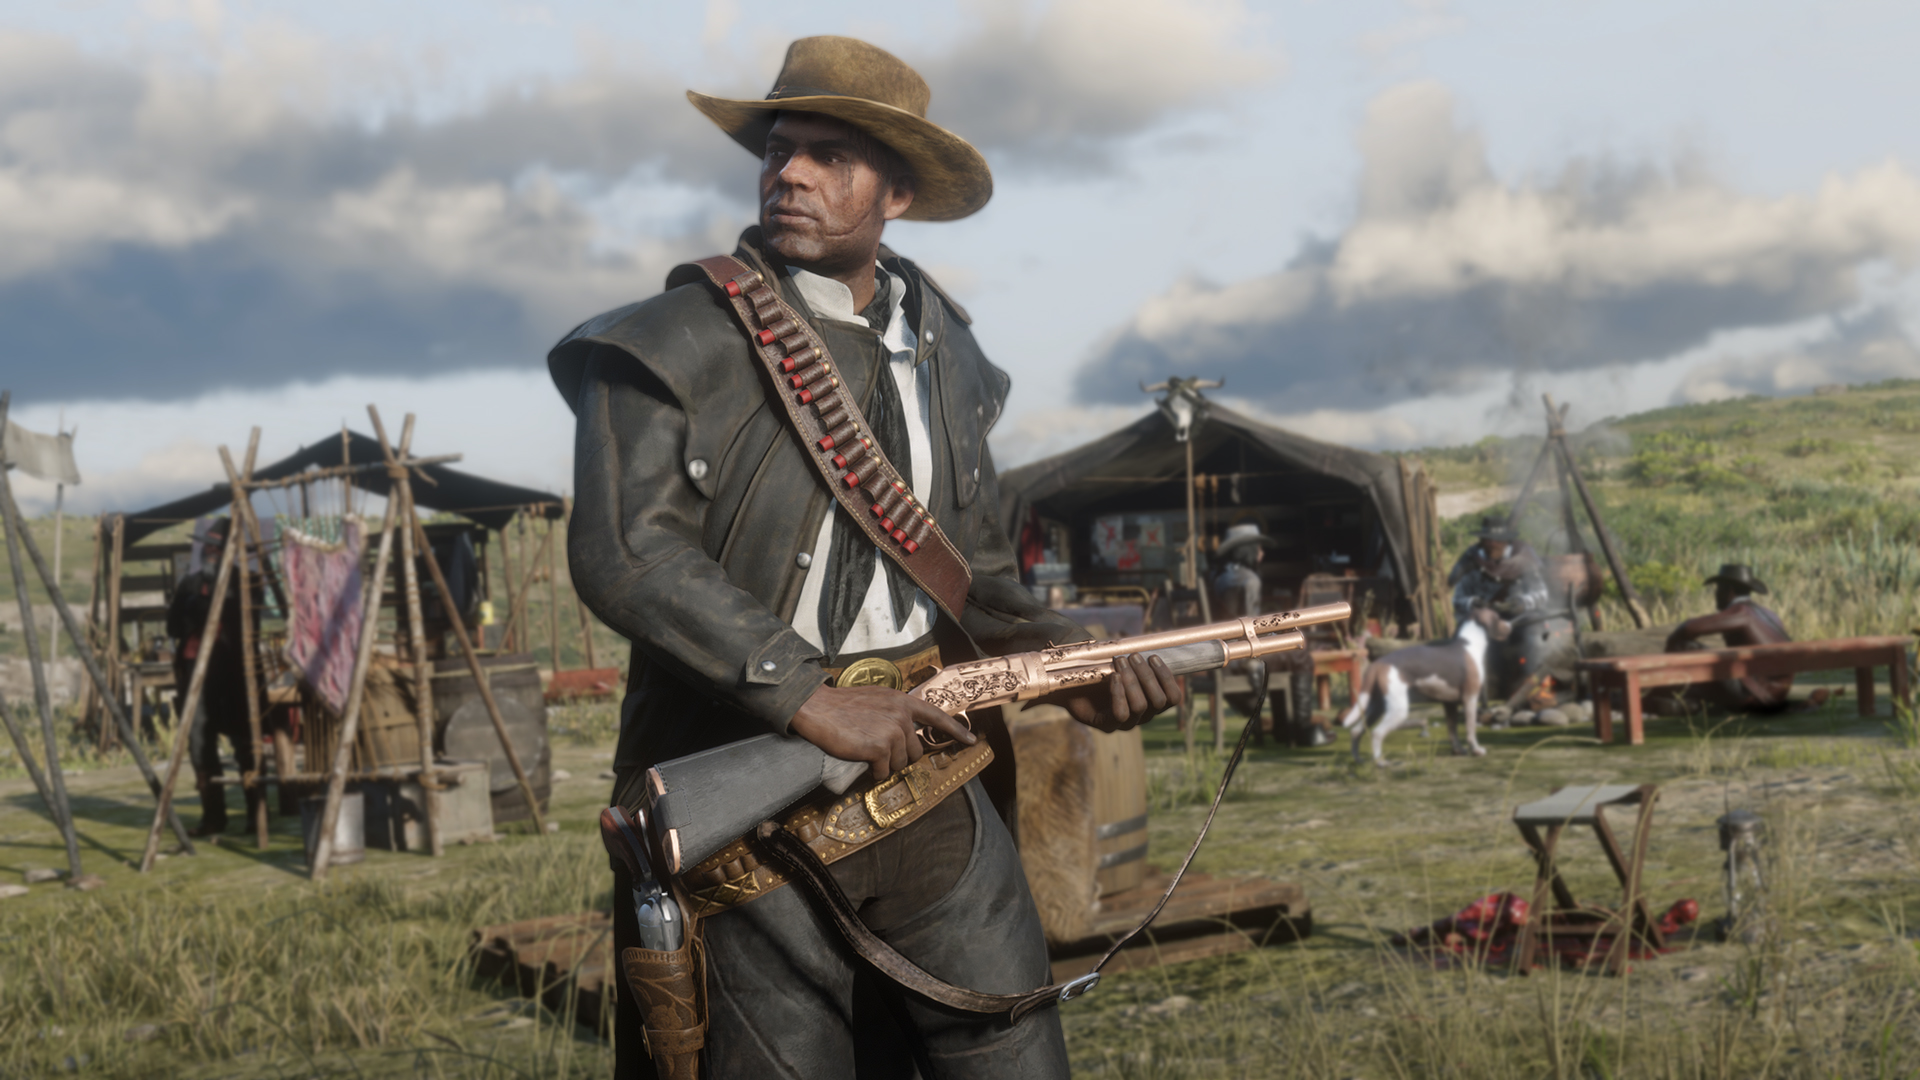 Red Dead Redemption 2's Steam launch is still pretty buggy